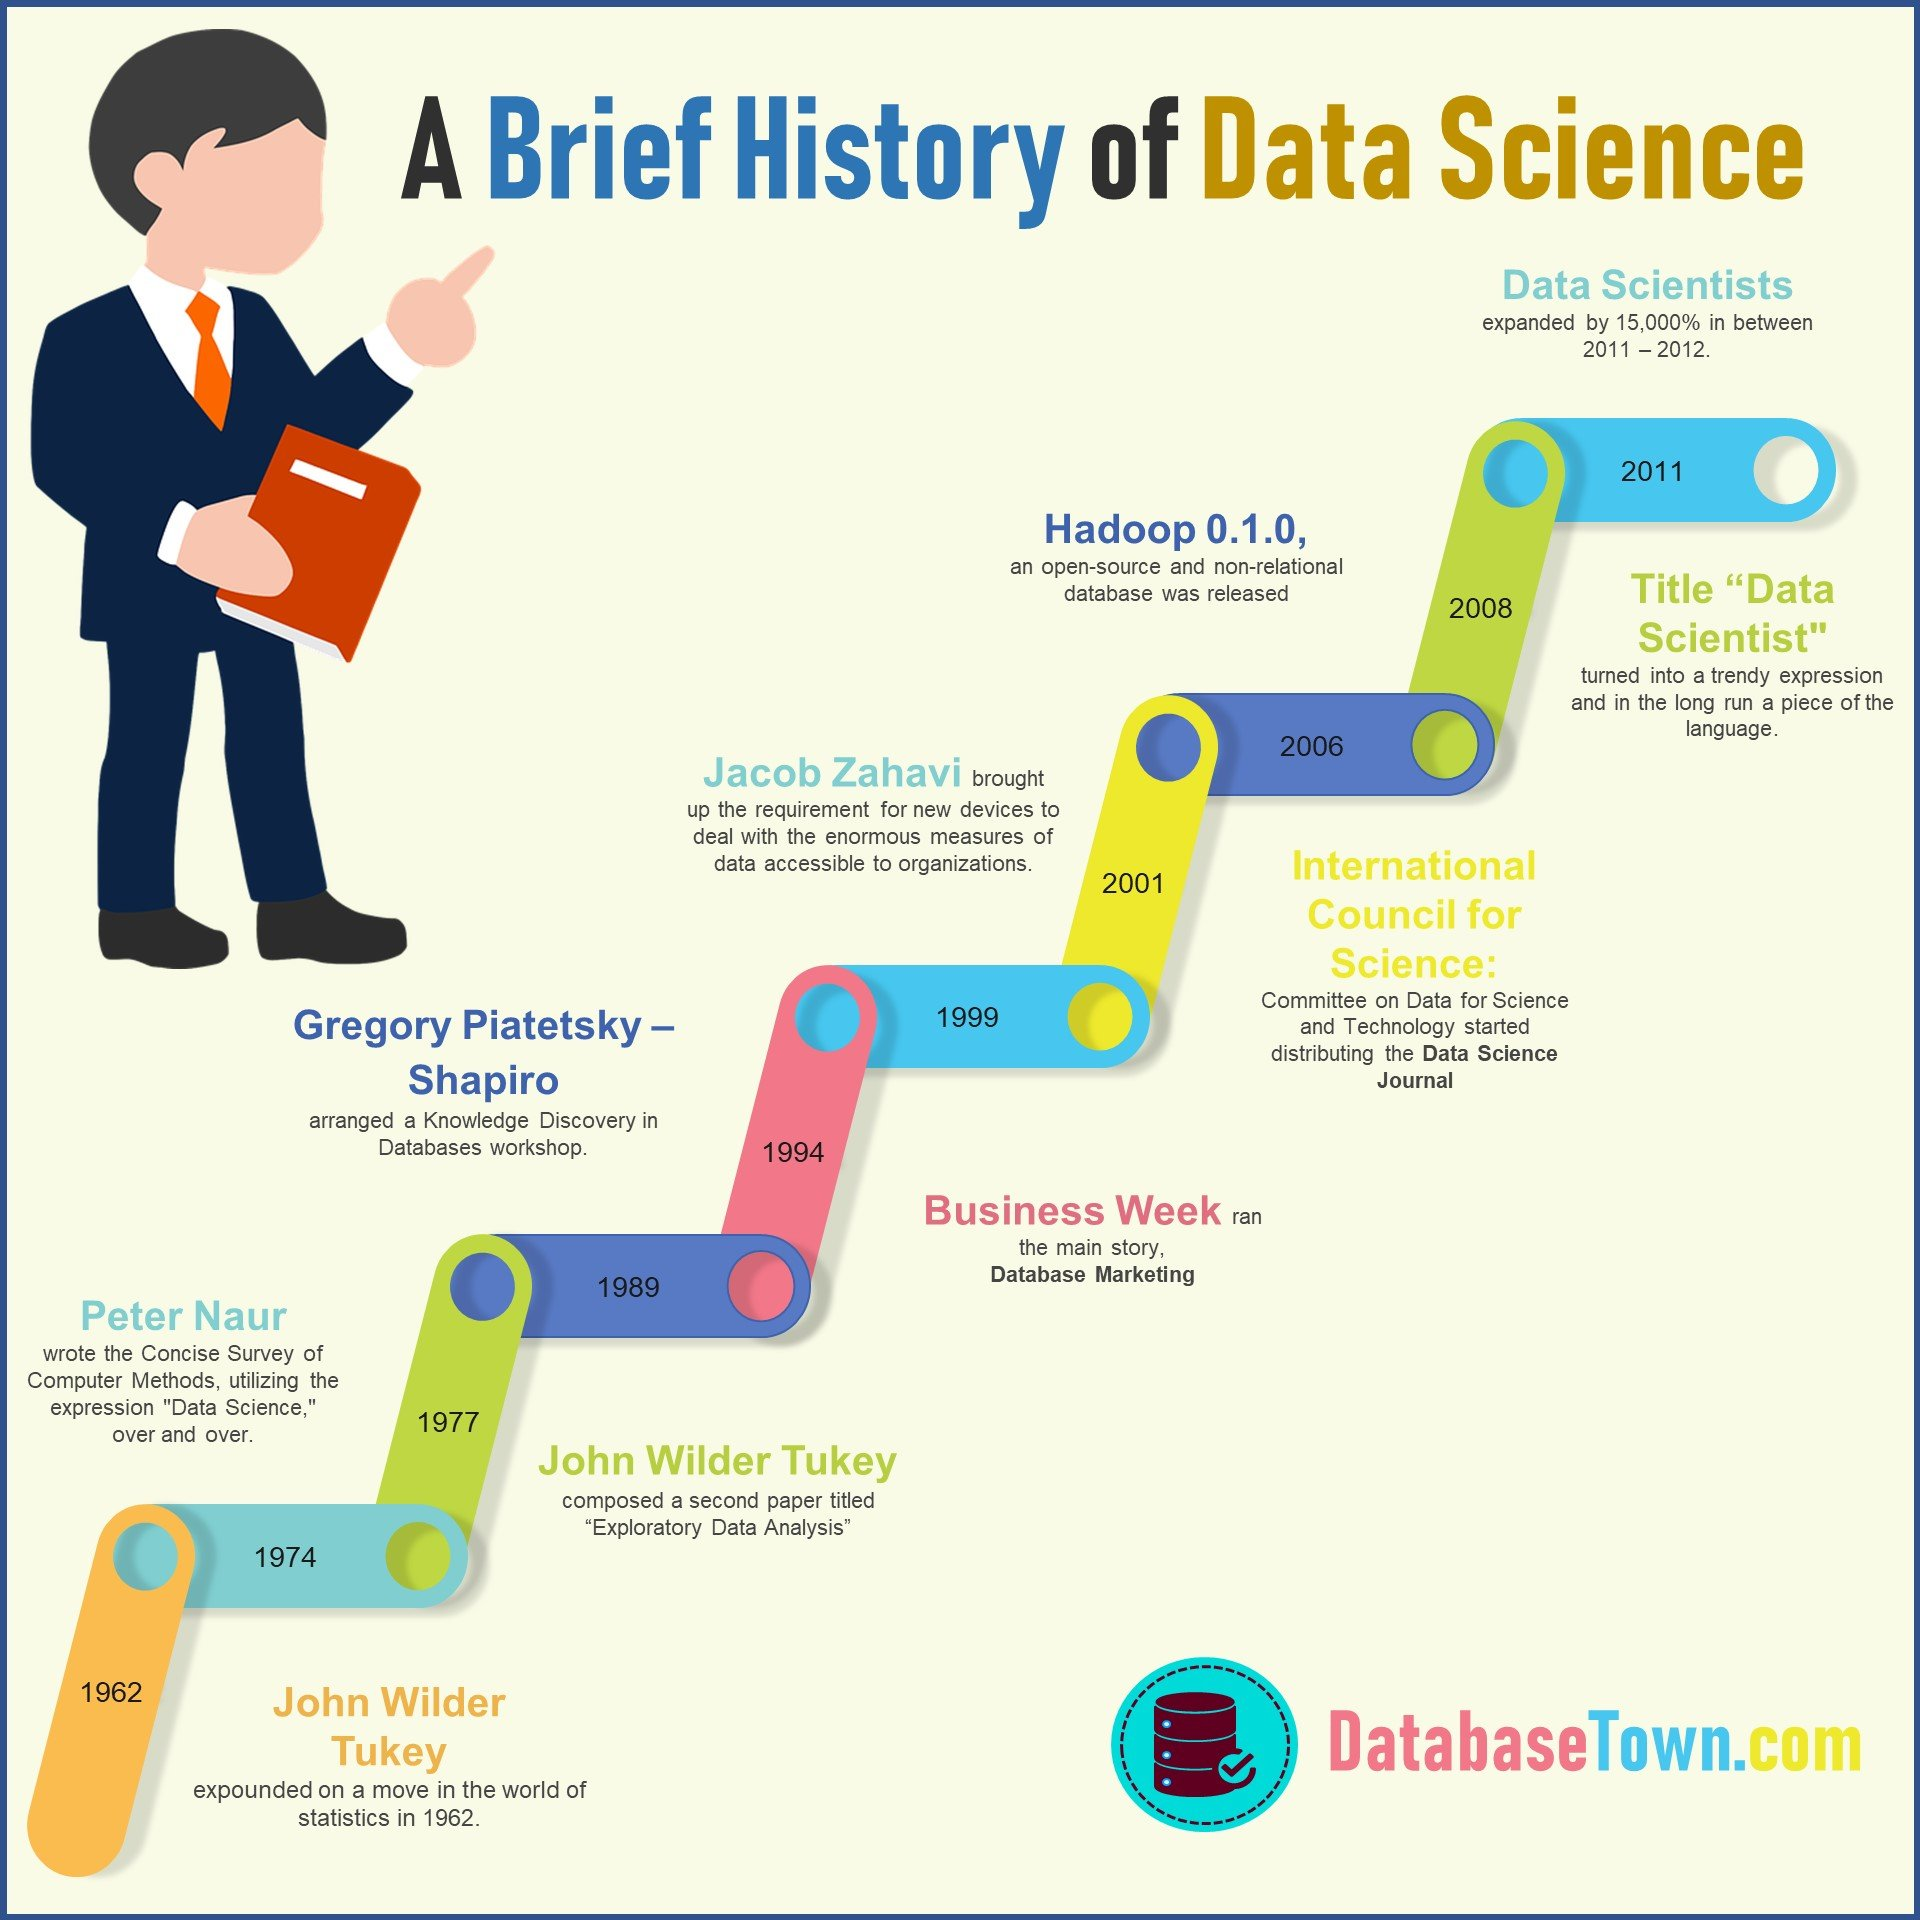 A Brief History of Data Science infographic